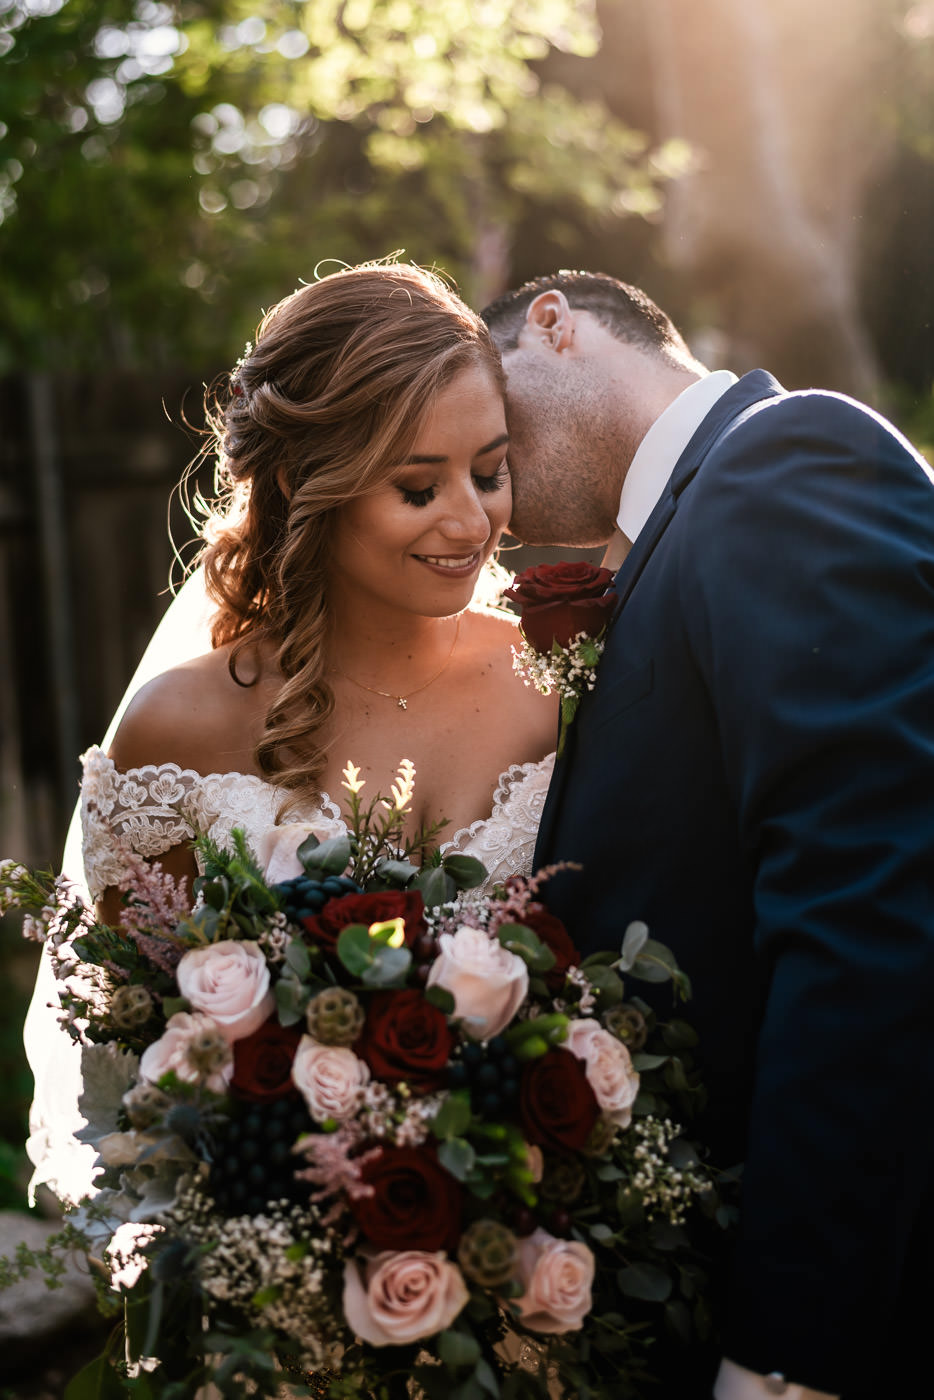 Groom whispers in his new brides year and makes her smile.